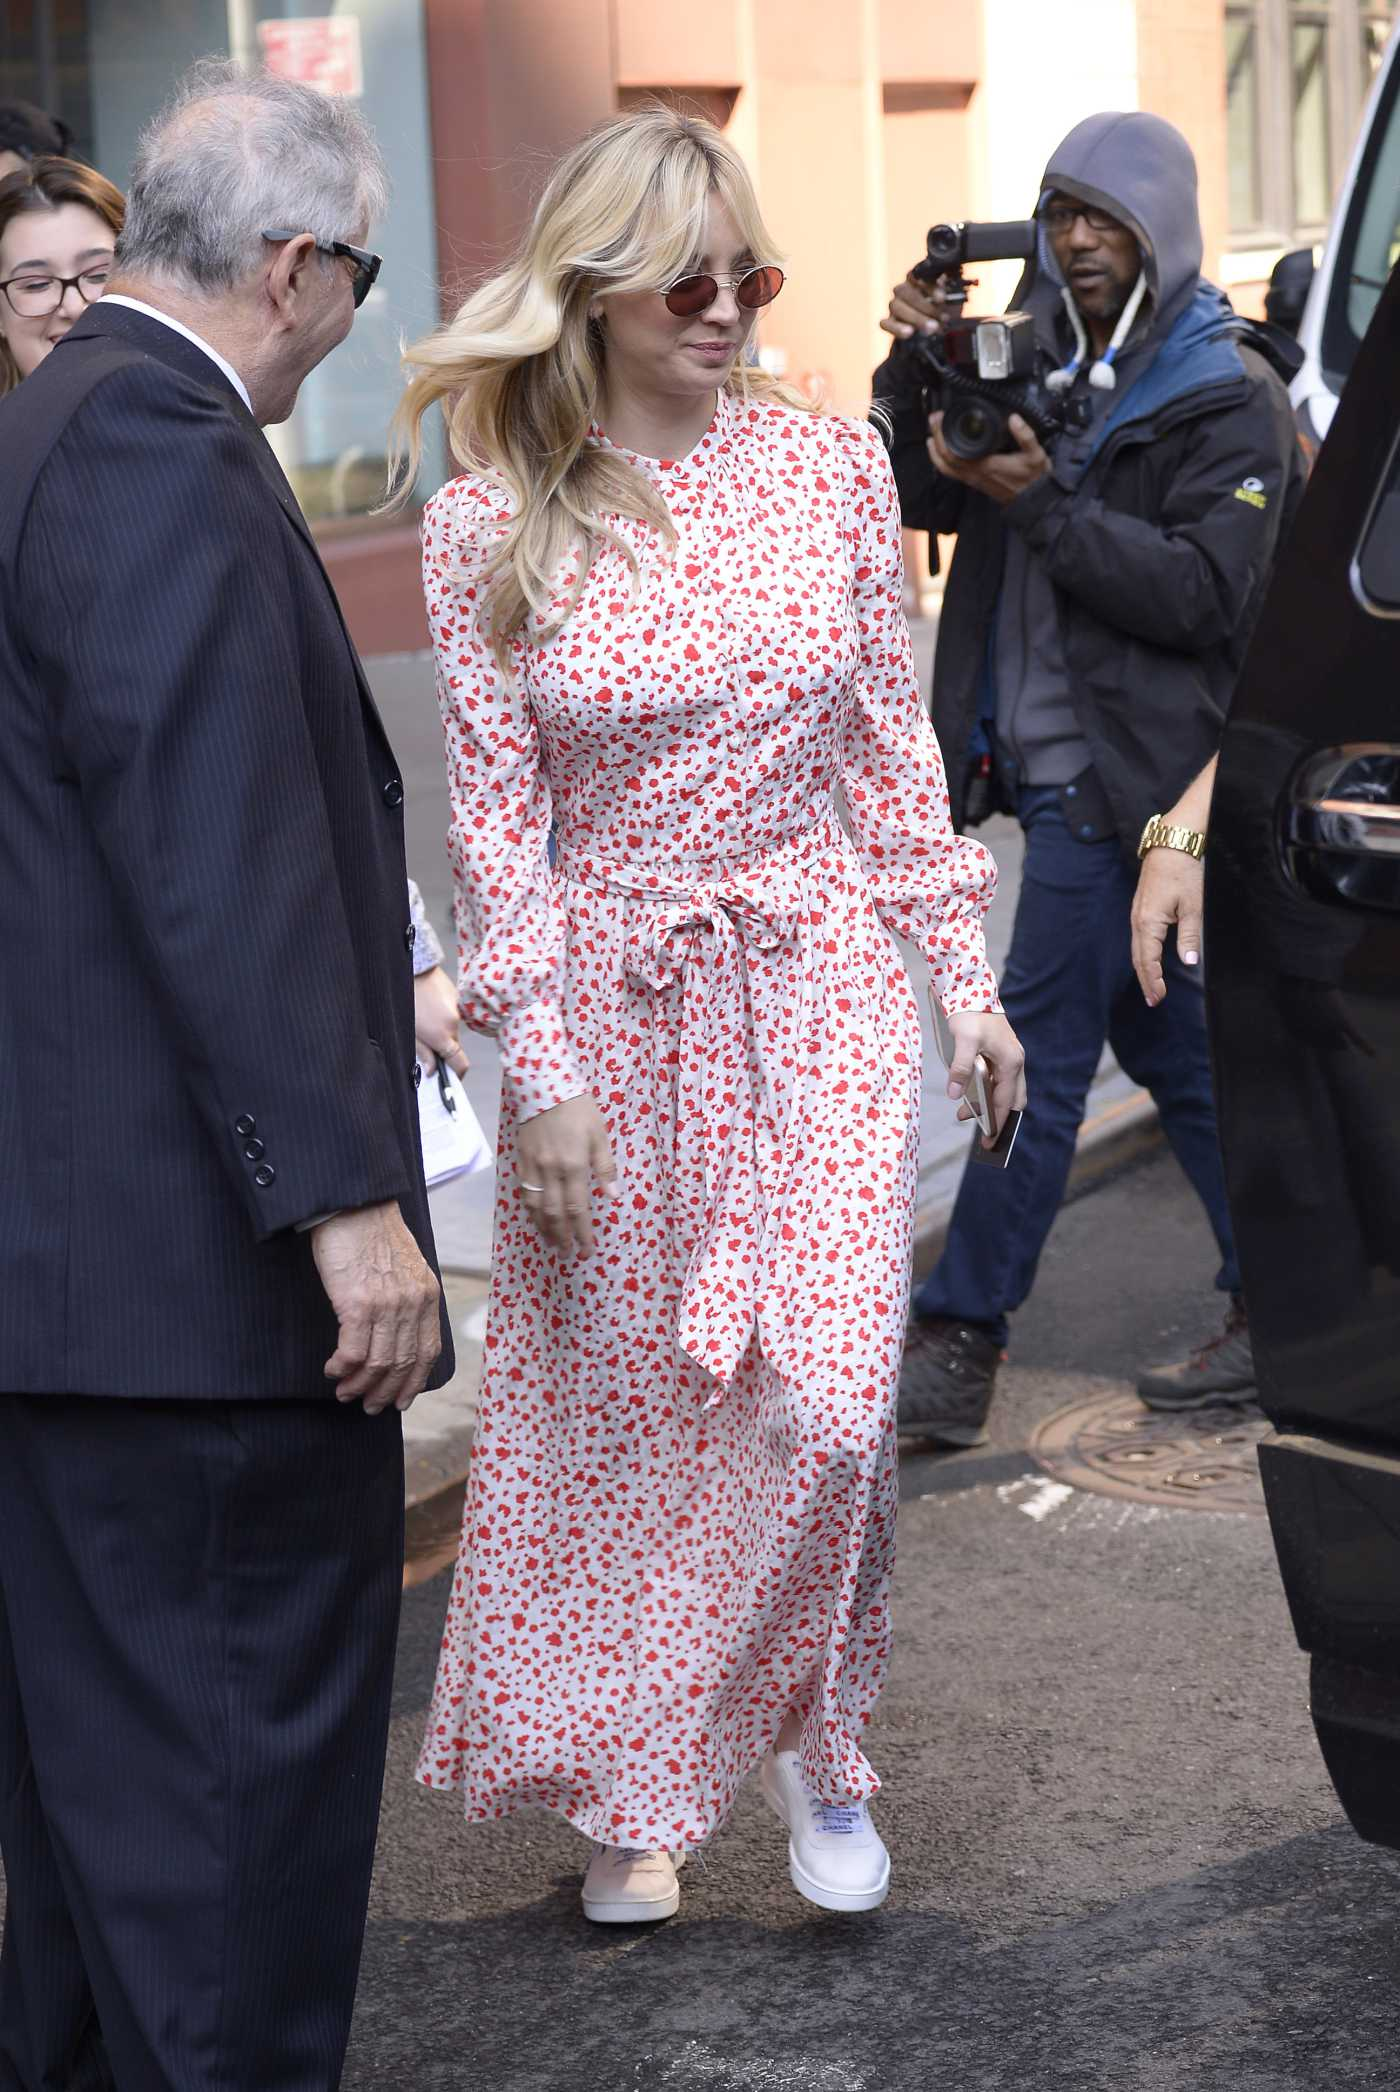 Kaley Cuoco in a Long Dress Was Seen Out in NYC 05/16/2019